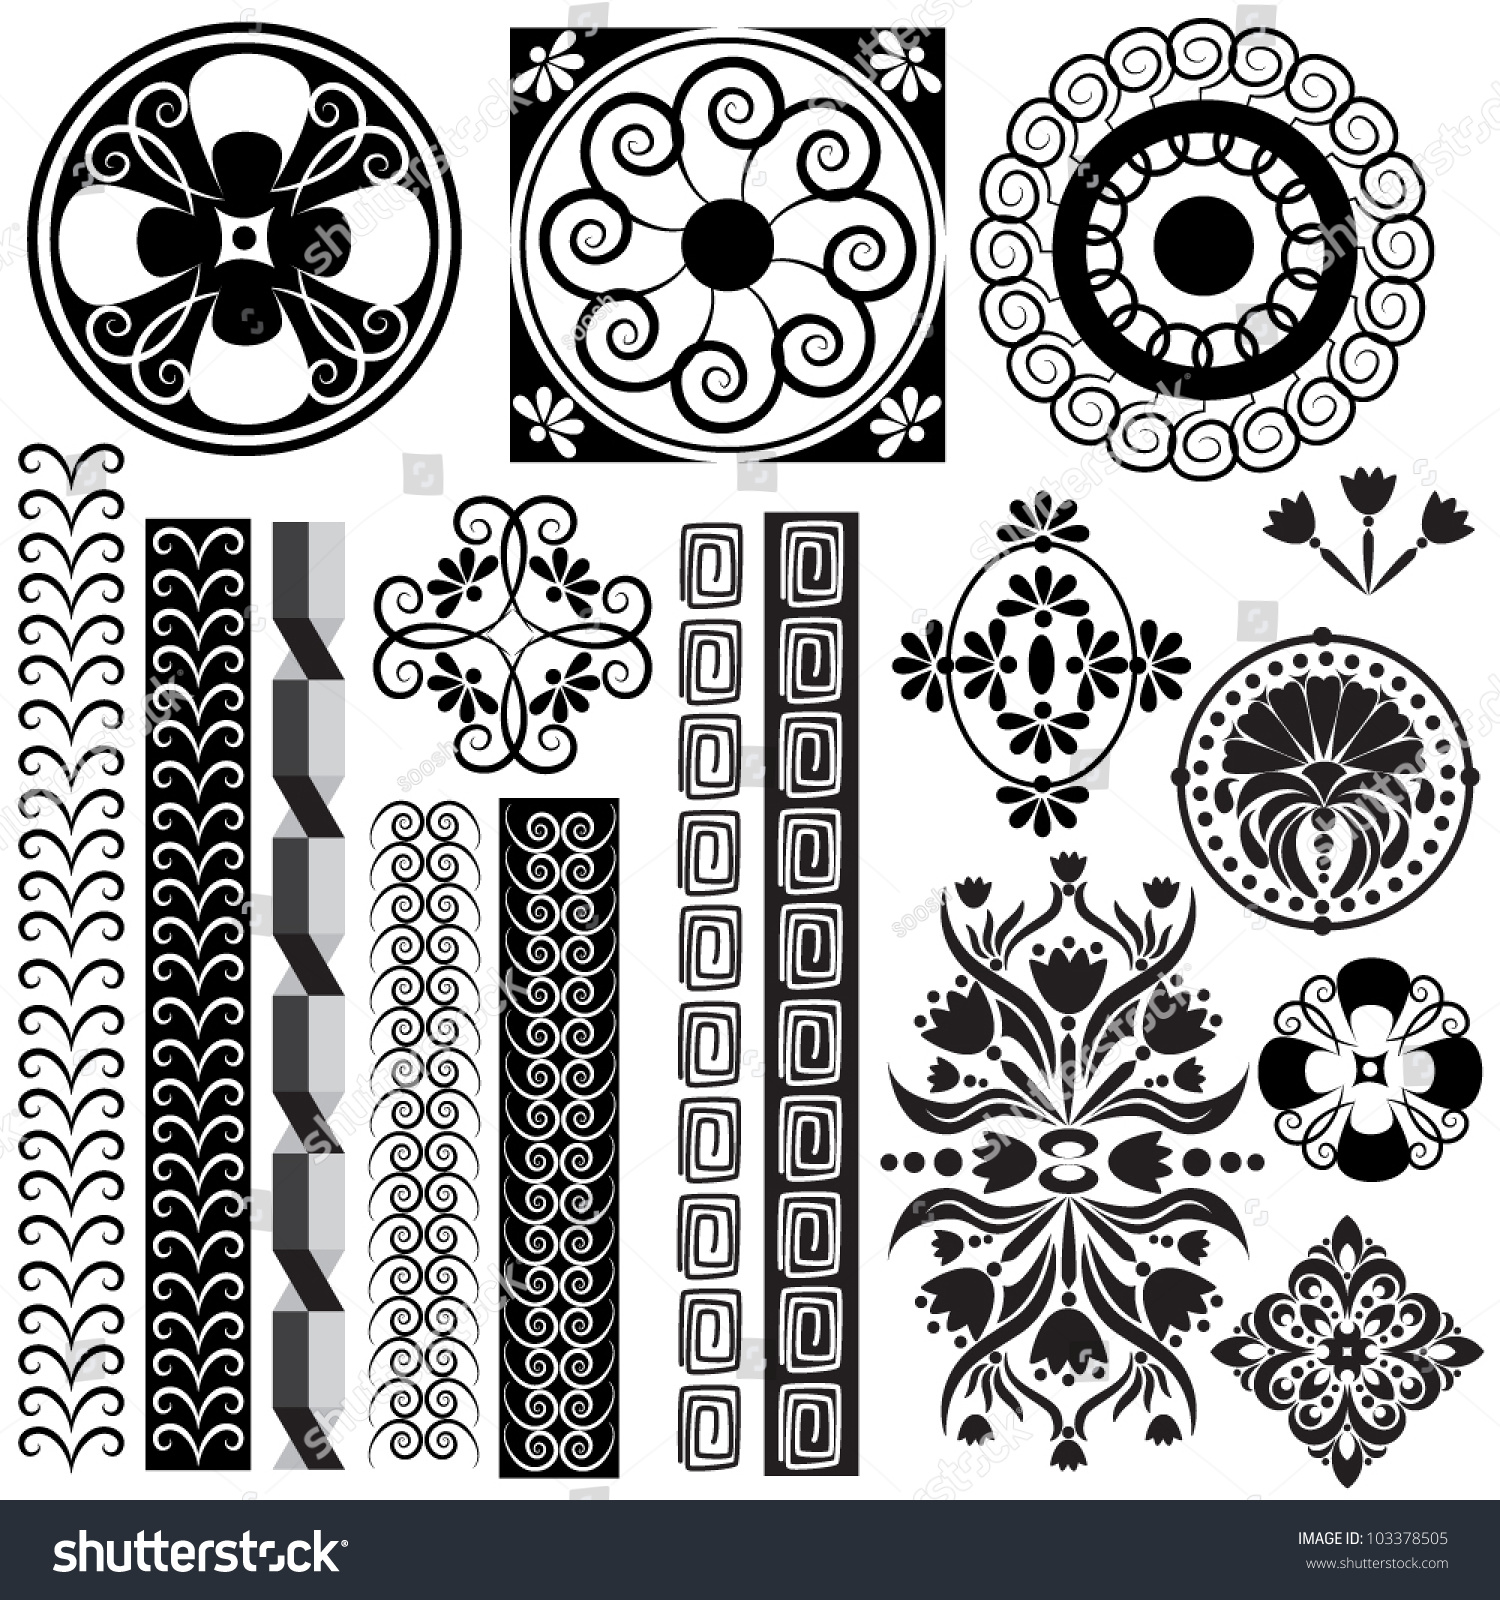 Black and white ornaments - Vector Set Of Illustrations With Symbols And Ornaments In Black And White